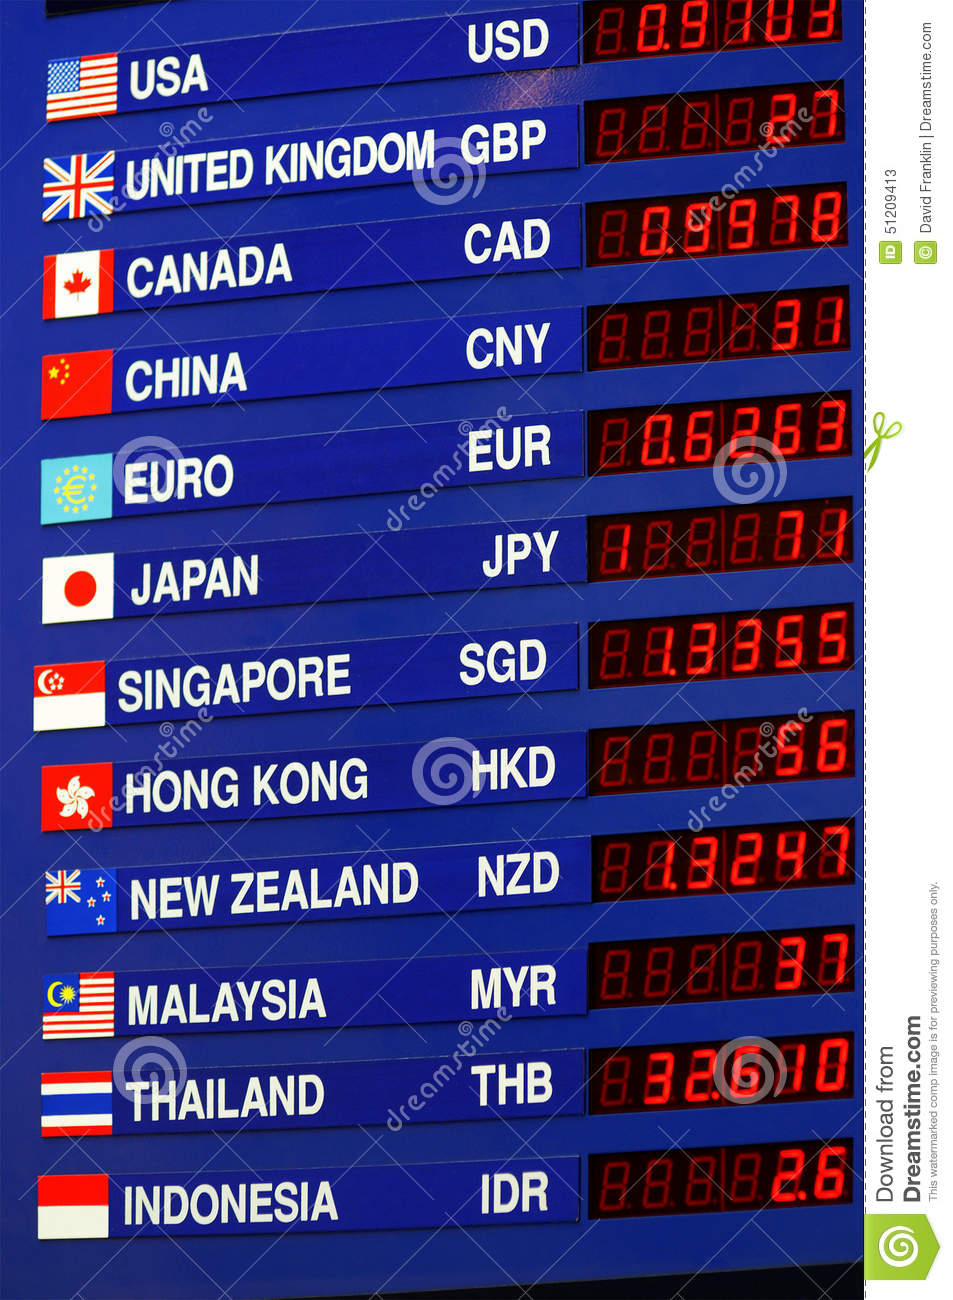 Foreign currency exchange news